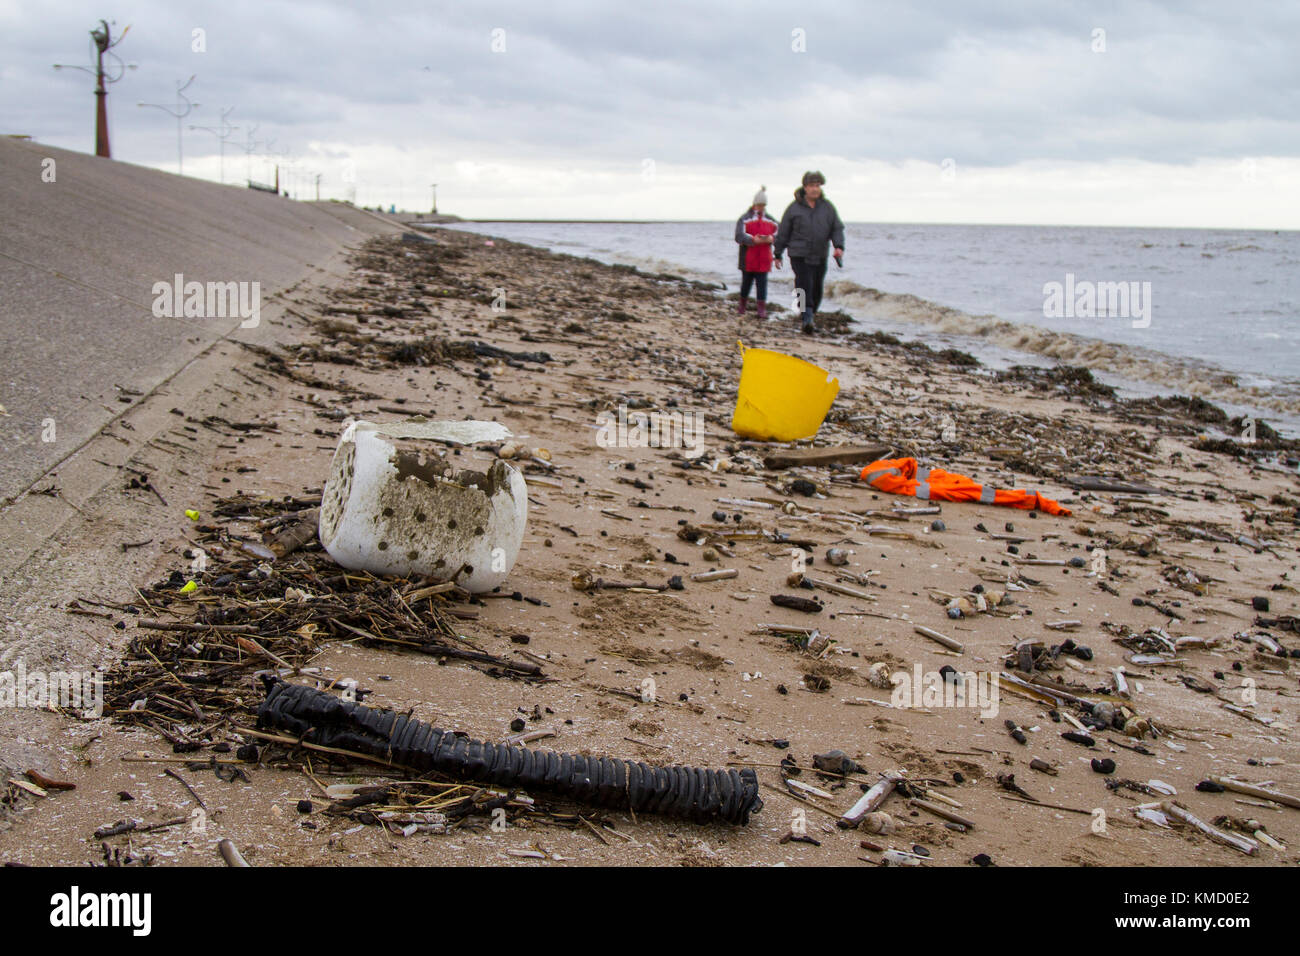 Southport, Merseyside, UK Weather. 6th December, 2017.  High Tide at the resort brings in plastic debris& refuse - Stock Image